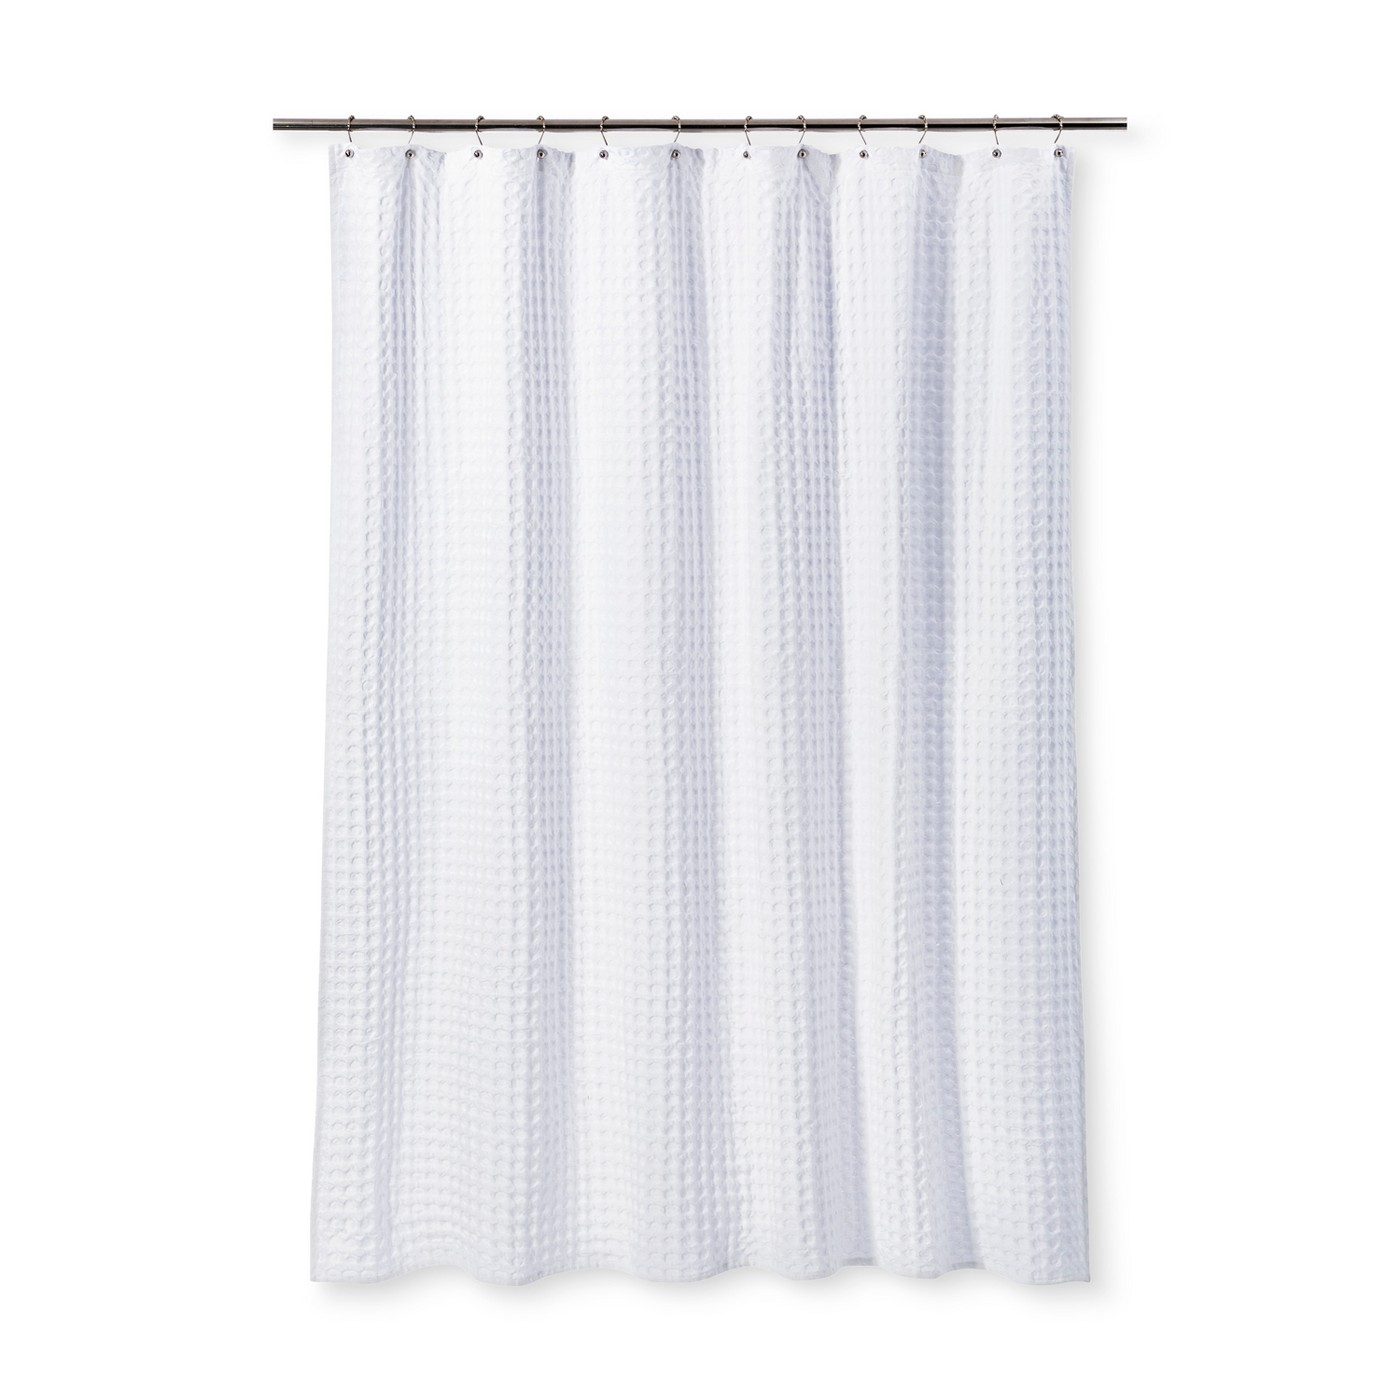 Jacquard Shower Curtain White - Fieldcrest® - image 1 of 1